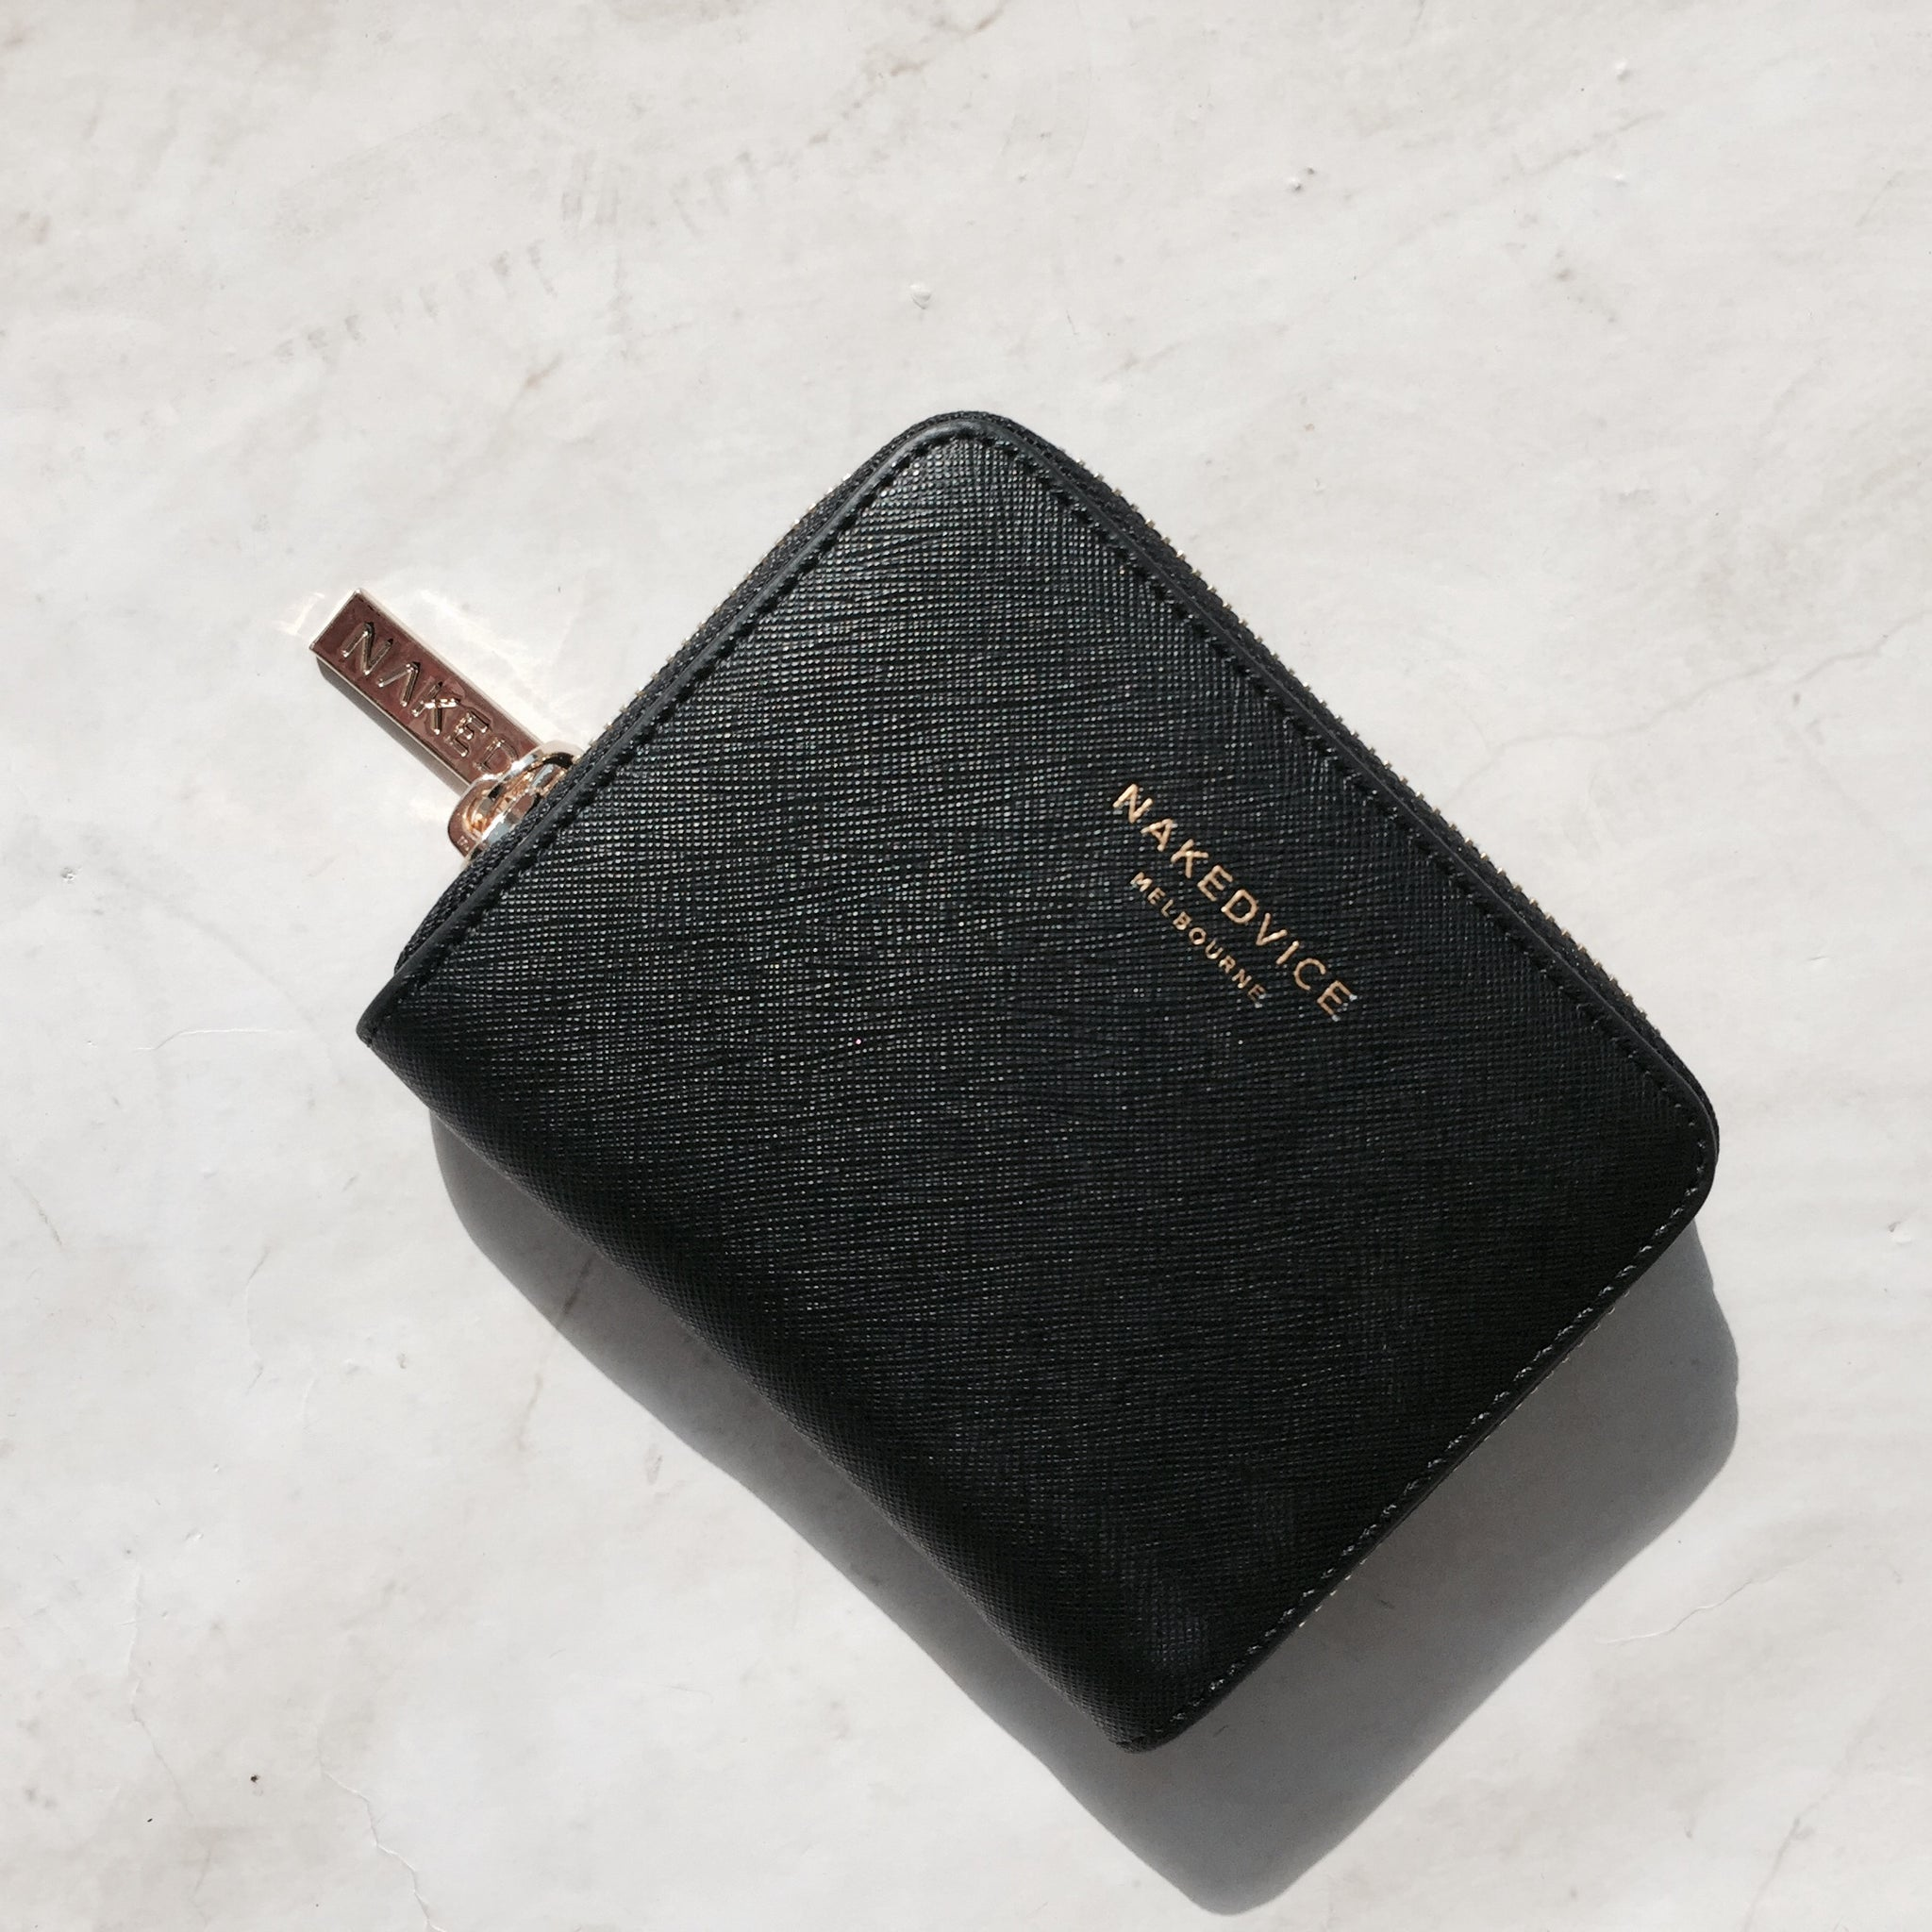 THE YAN GOLD WALLET